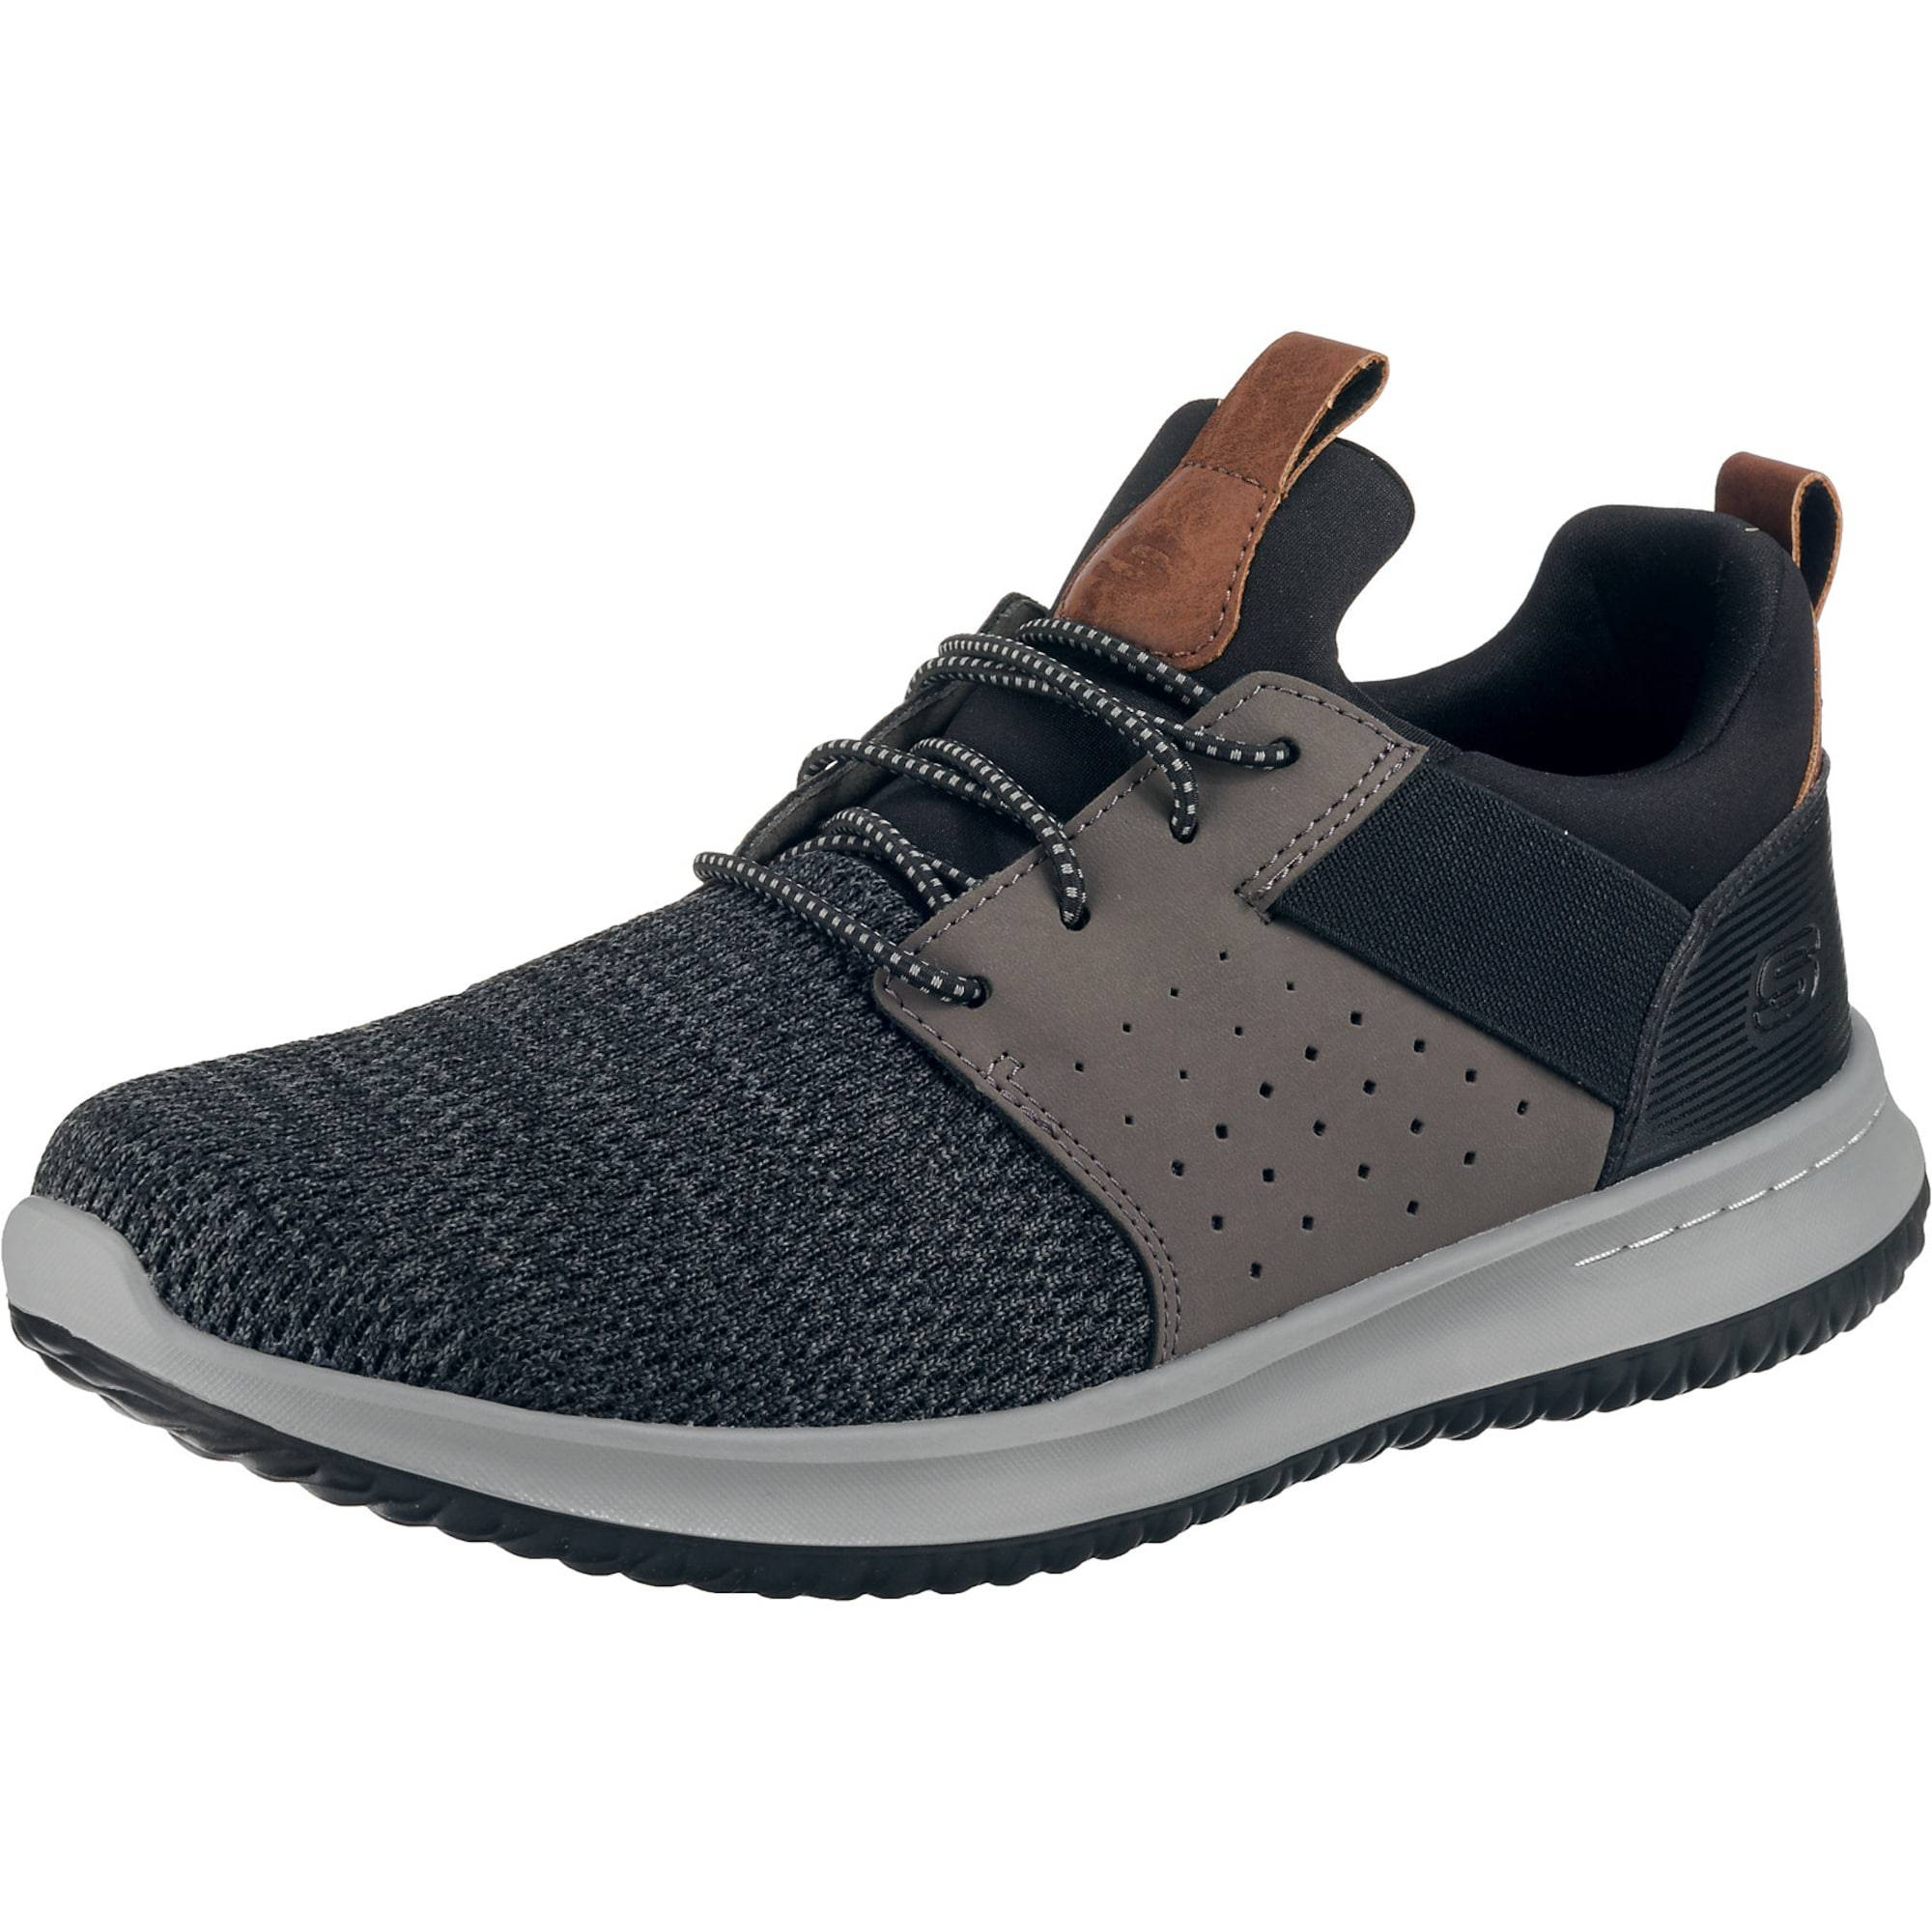 SKECHERS Baskets basses 'DELSON CAMBEN'  - Noir - Taille: 40 - male